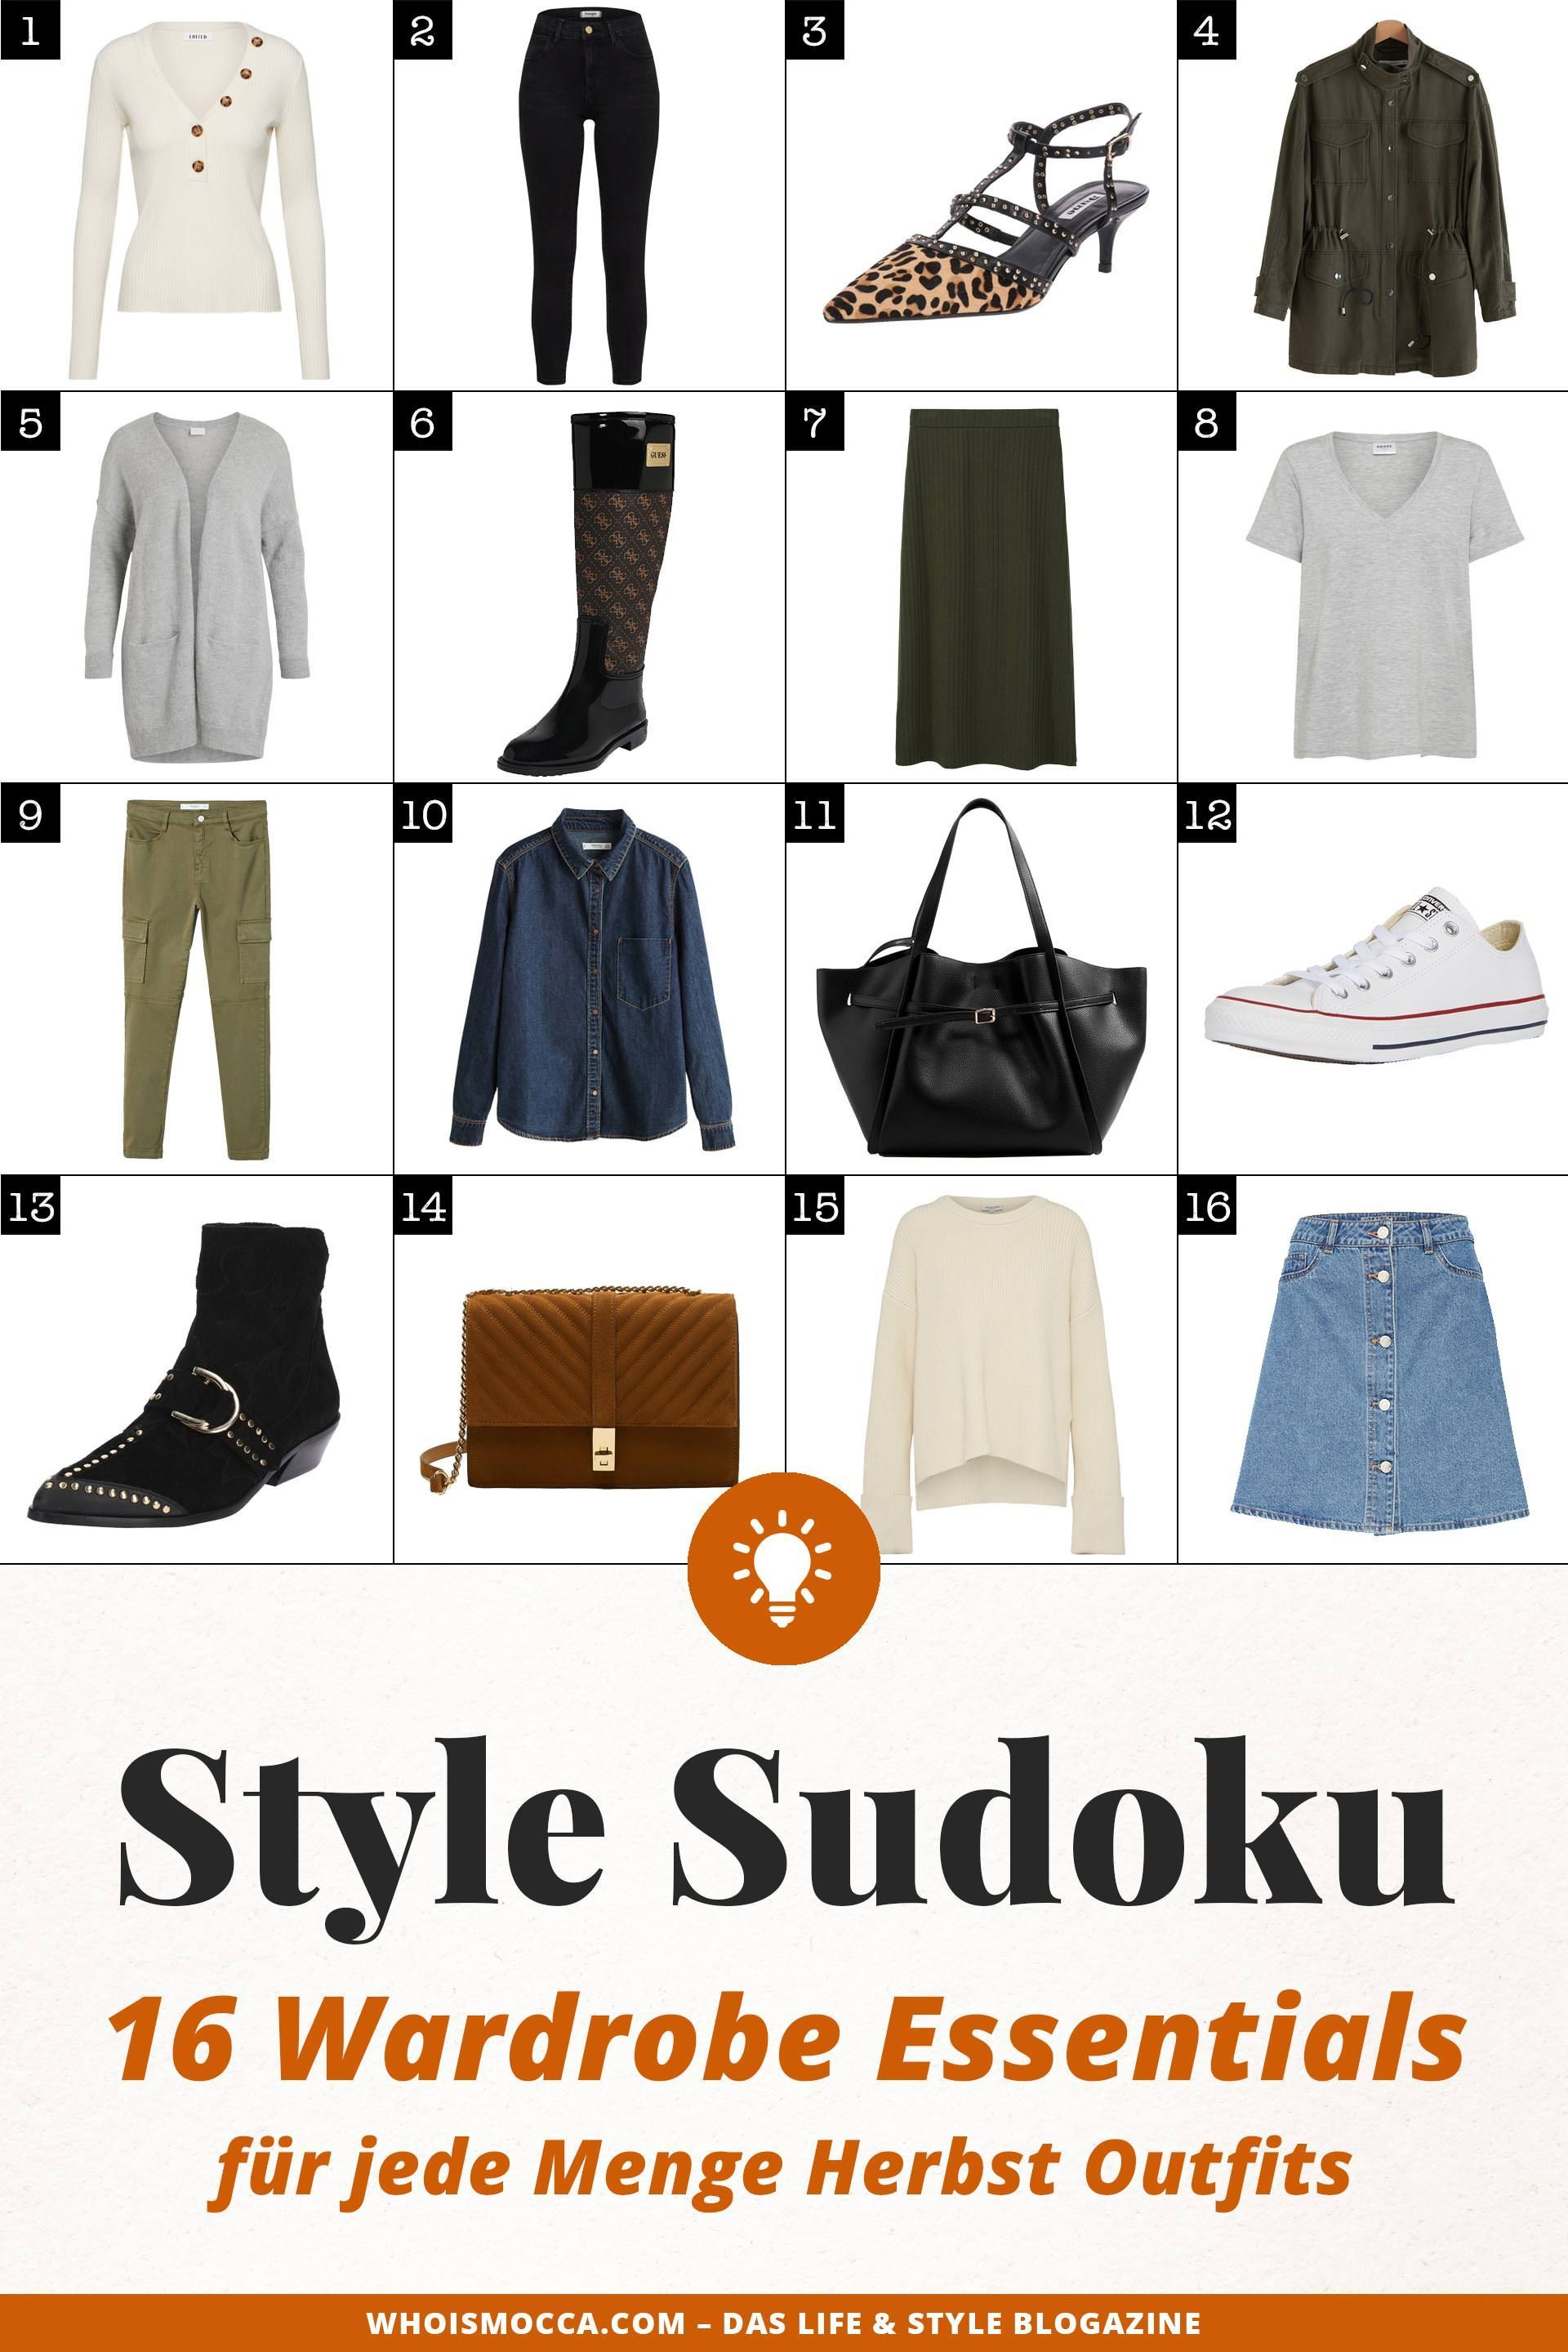 style sudoku jede menge herbst outfits mit 16 wardrobe. Black Bedroom Furniture Sets. Home Design Ideas